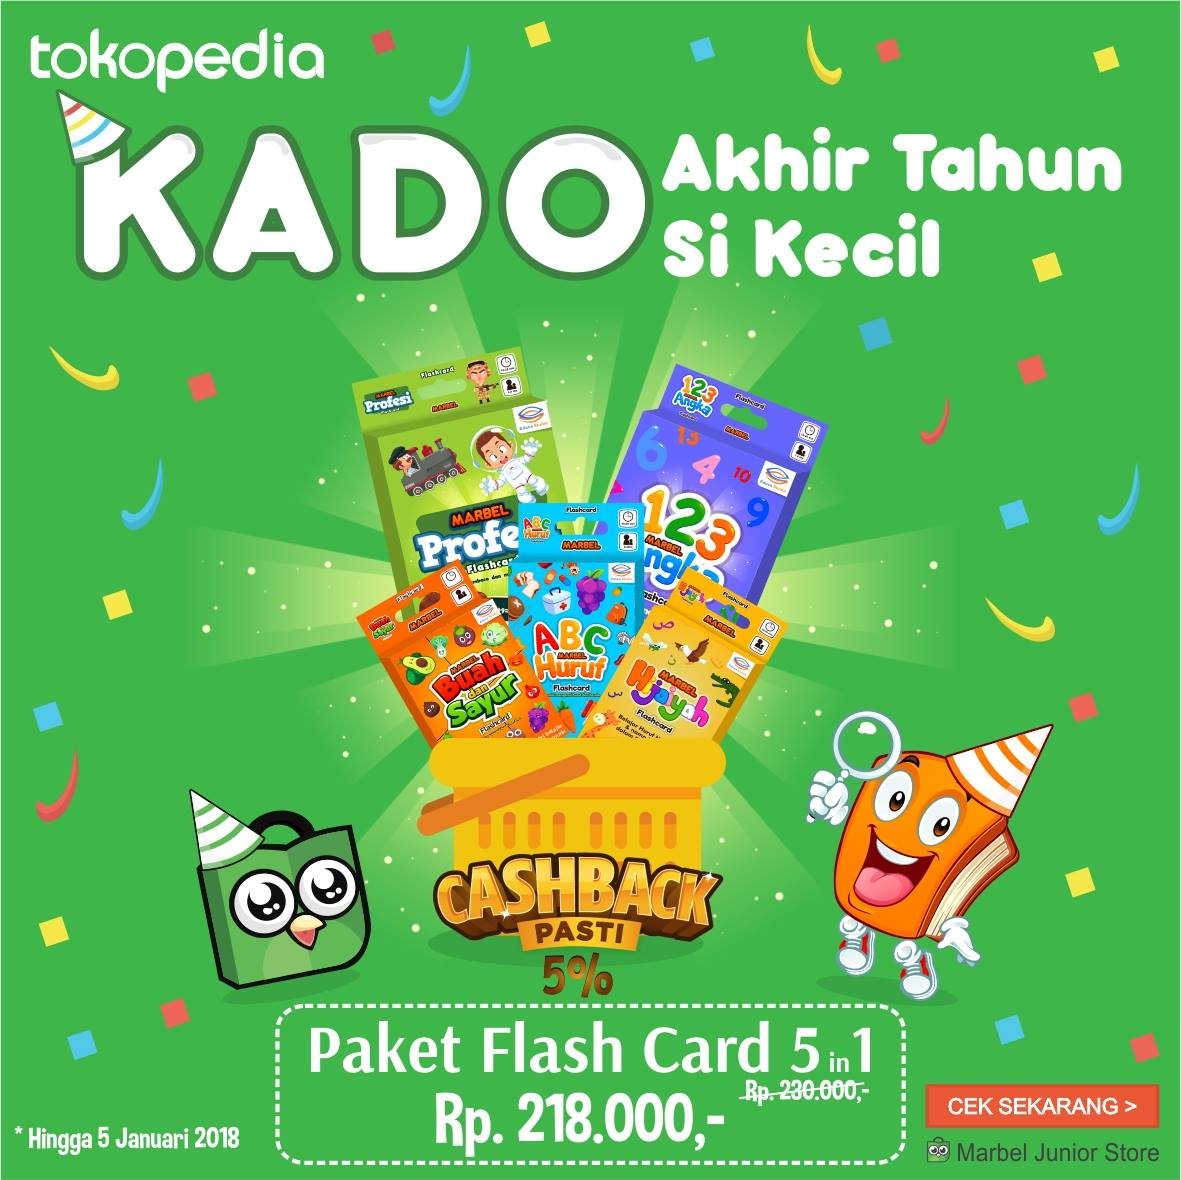 marbel-junior-store-tokopedia